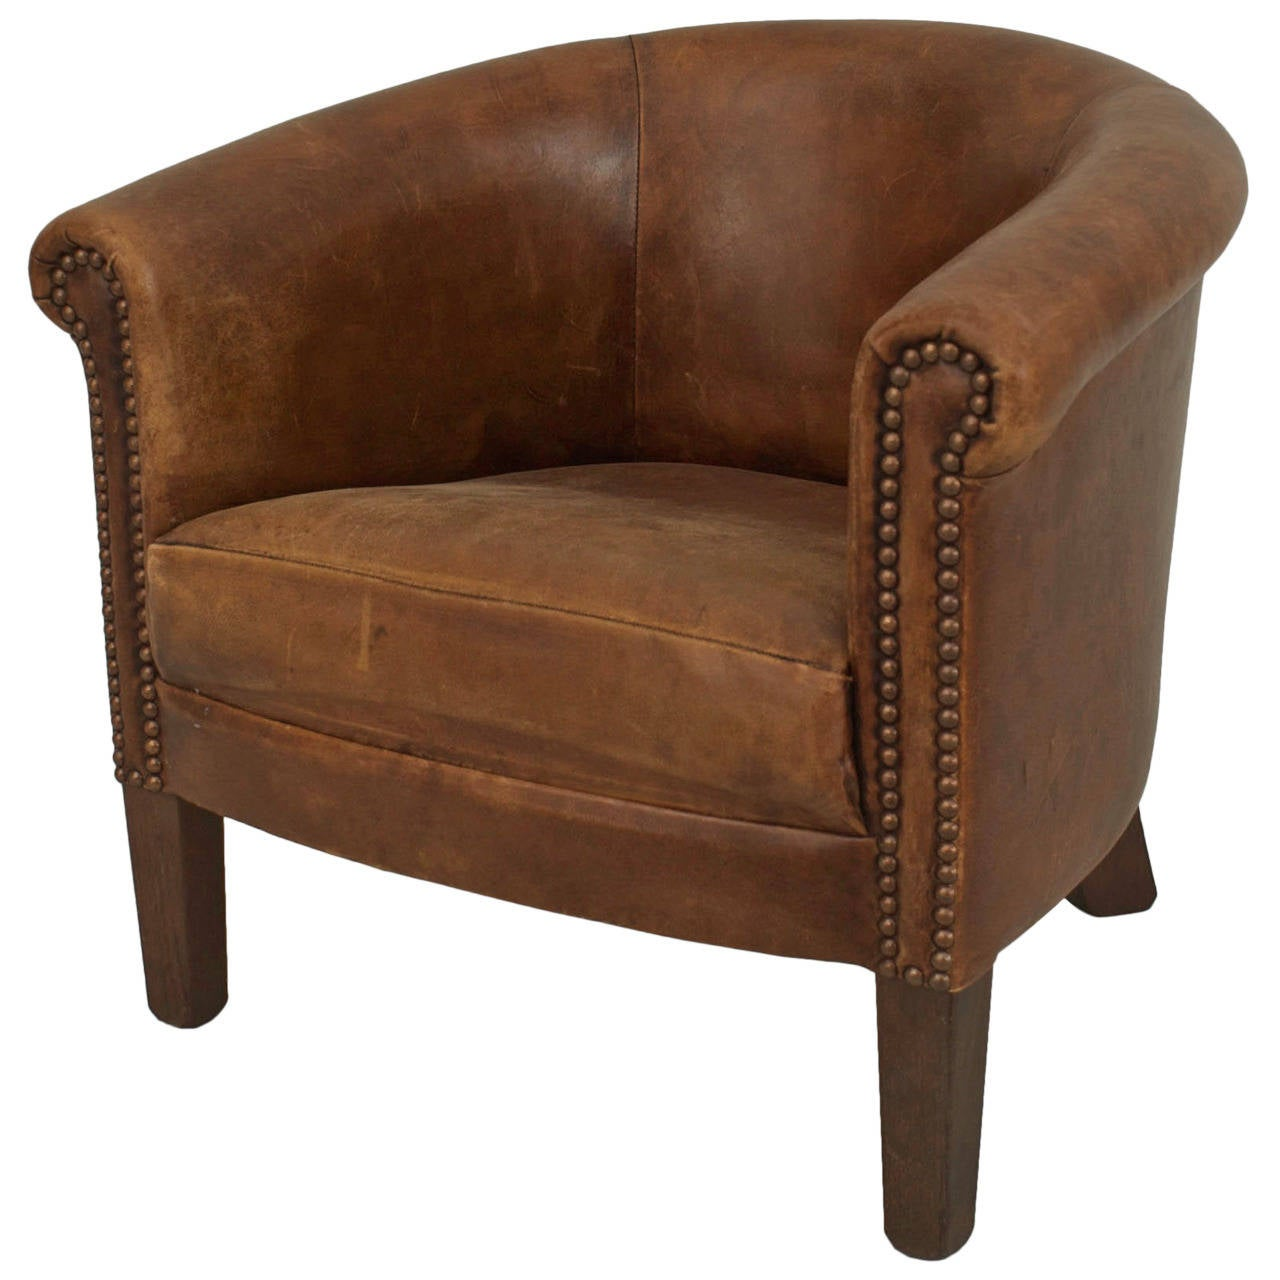 Roundabout Chair English Georgian Style Leather Round Back Child 39s Club